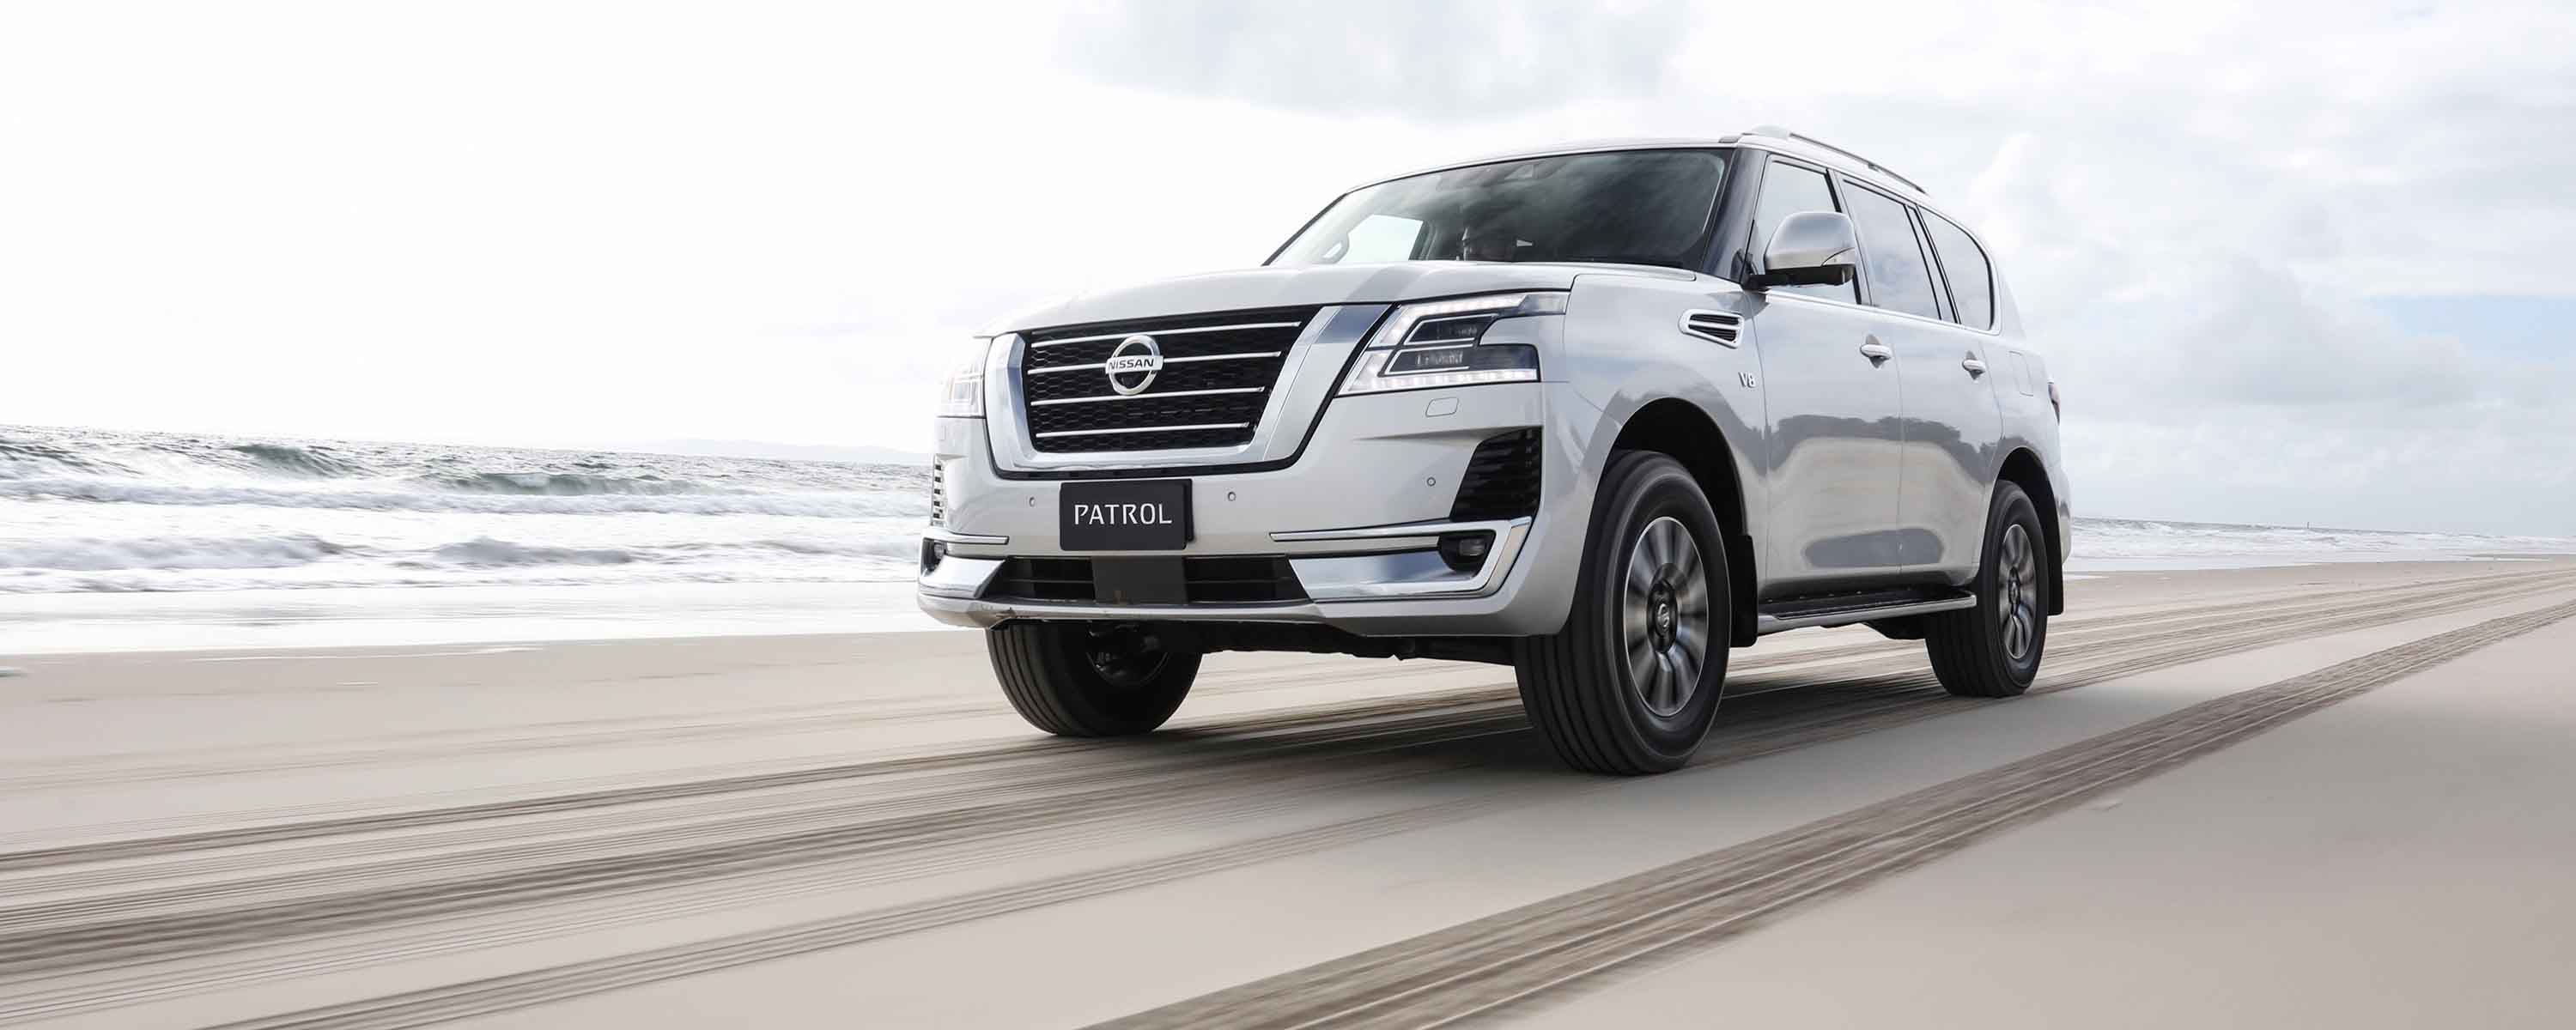 The New Nissan Patrol Image